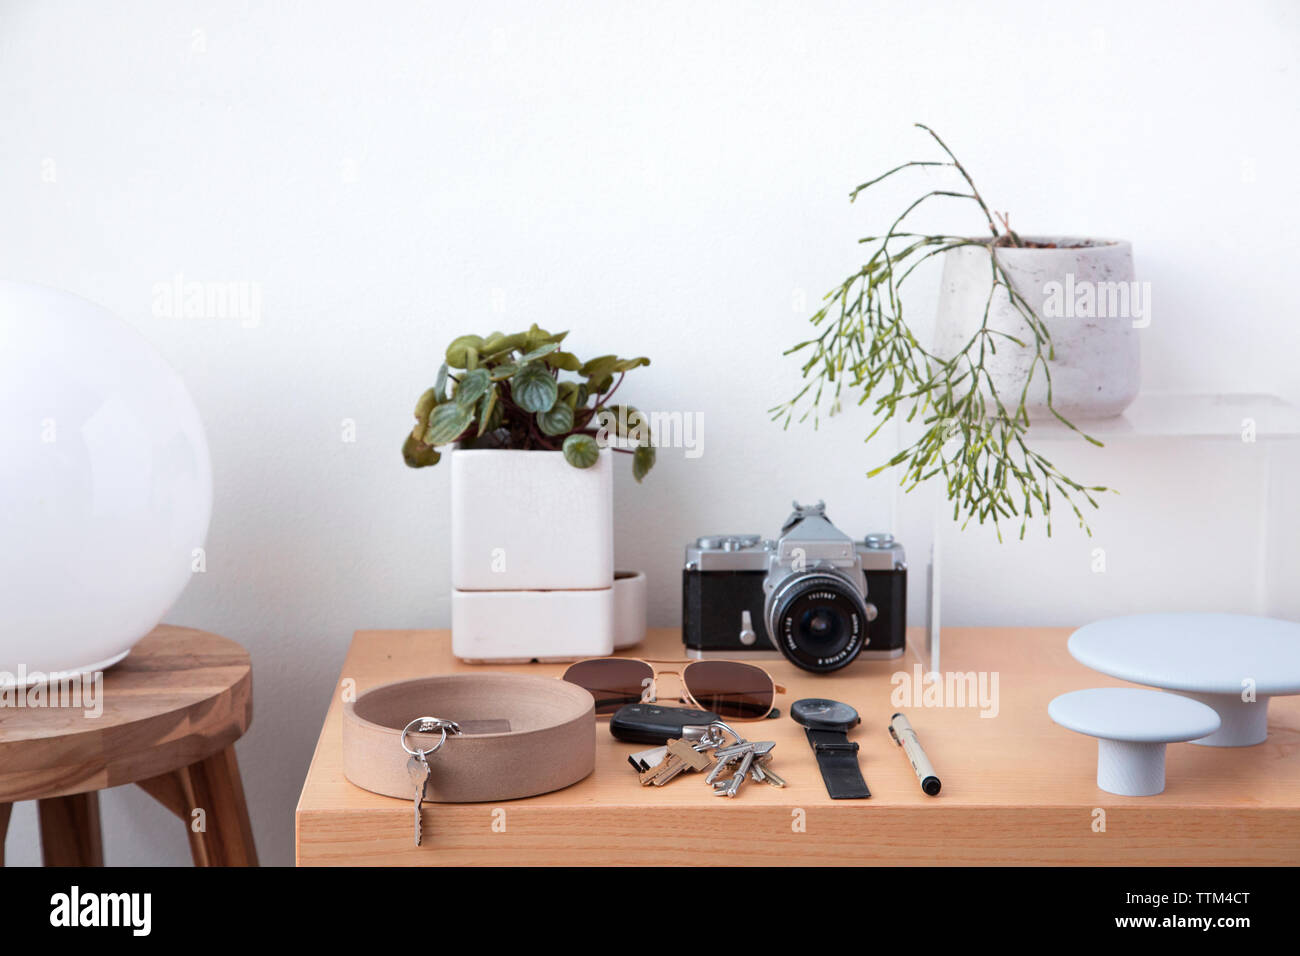 Various objects on wooden table against white wall at home - Stock Image